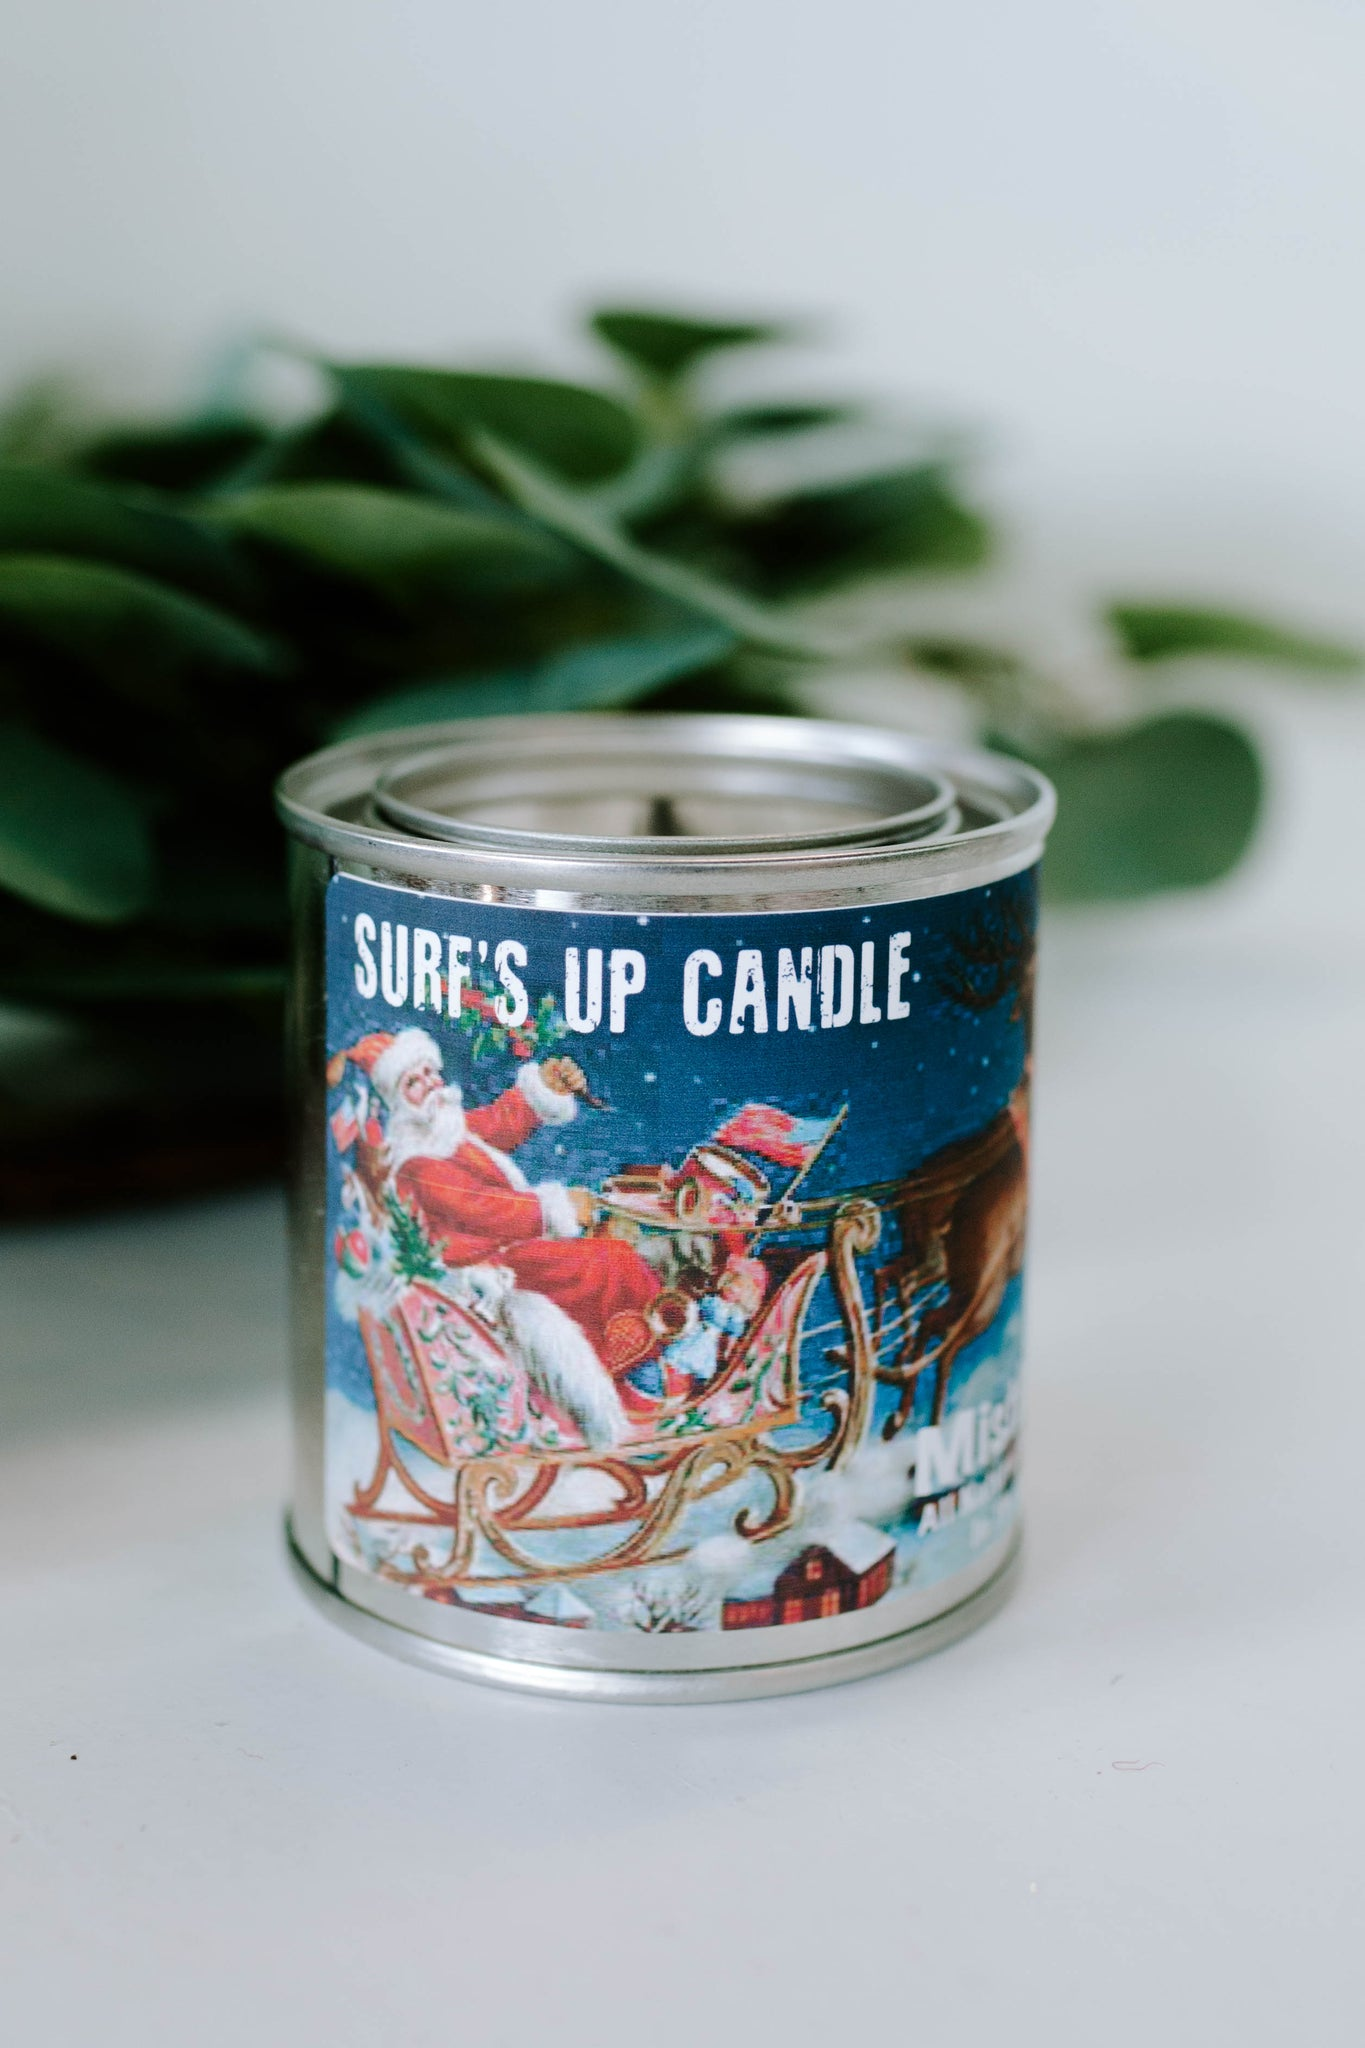 Surf's Up Candles: Jolly Old St. Nicholas